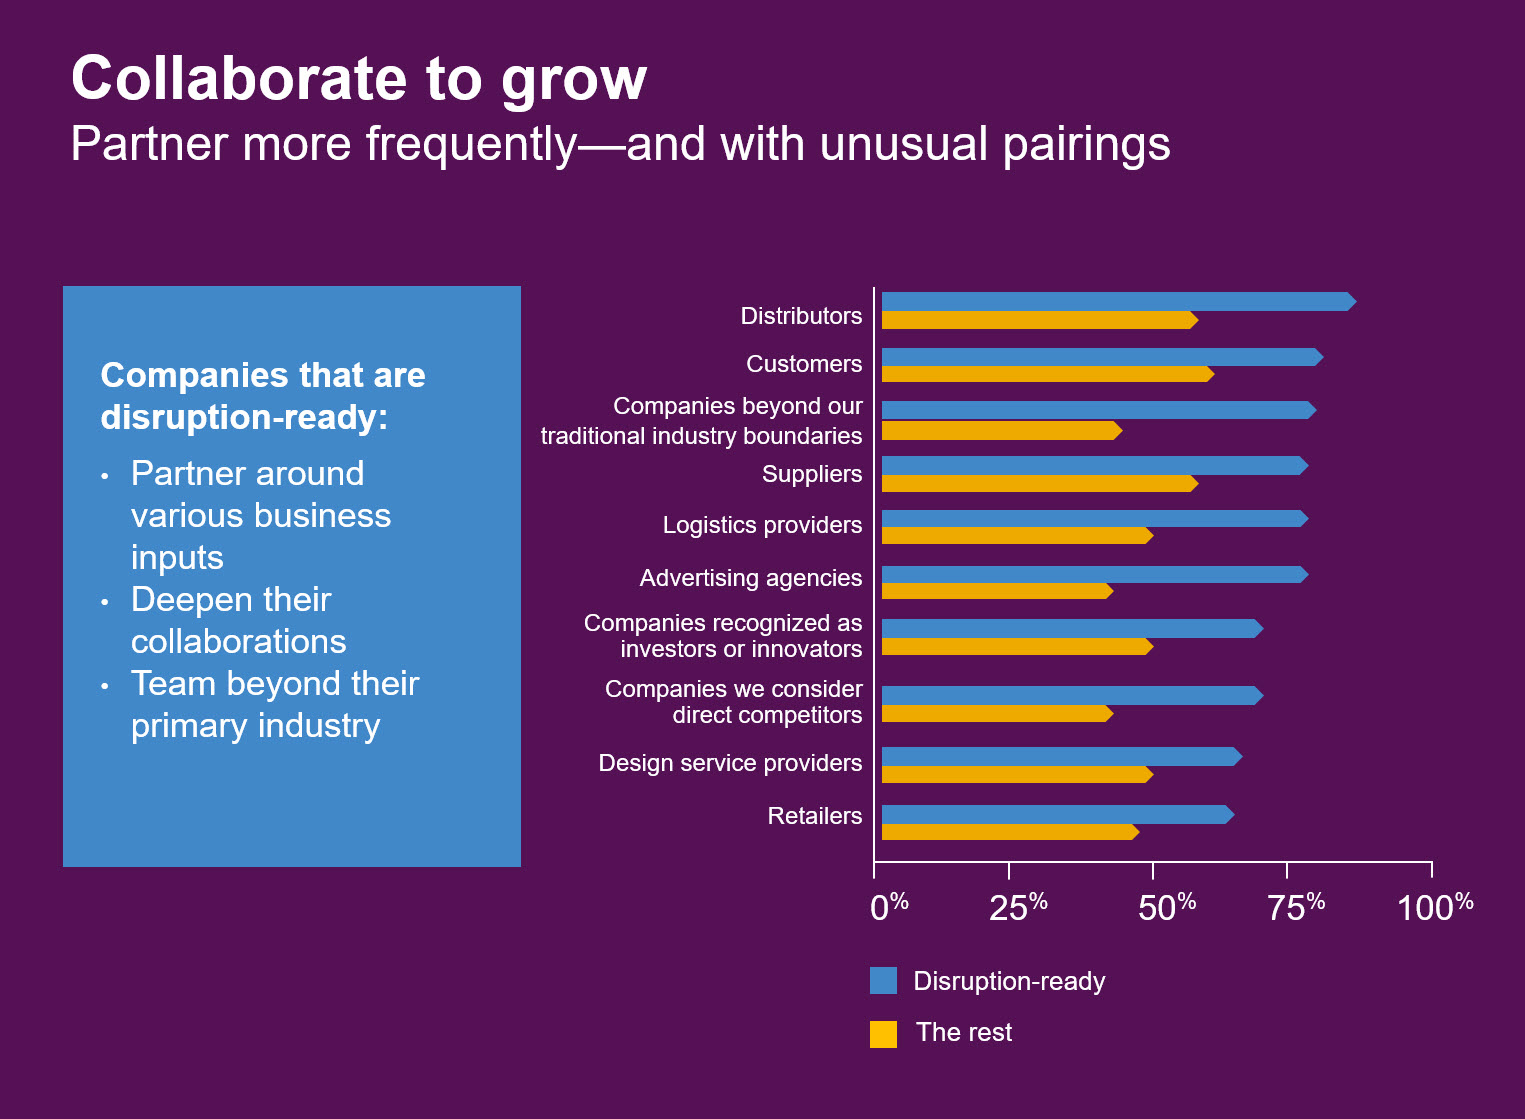 Collaborate to grow - Stats on industry disruption